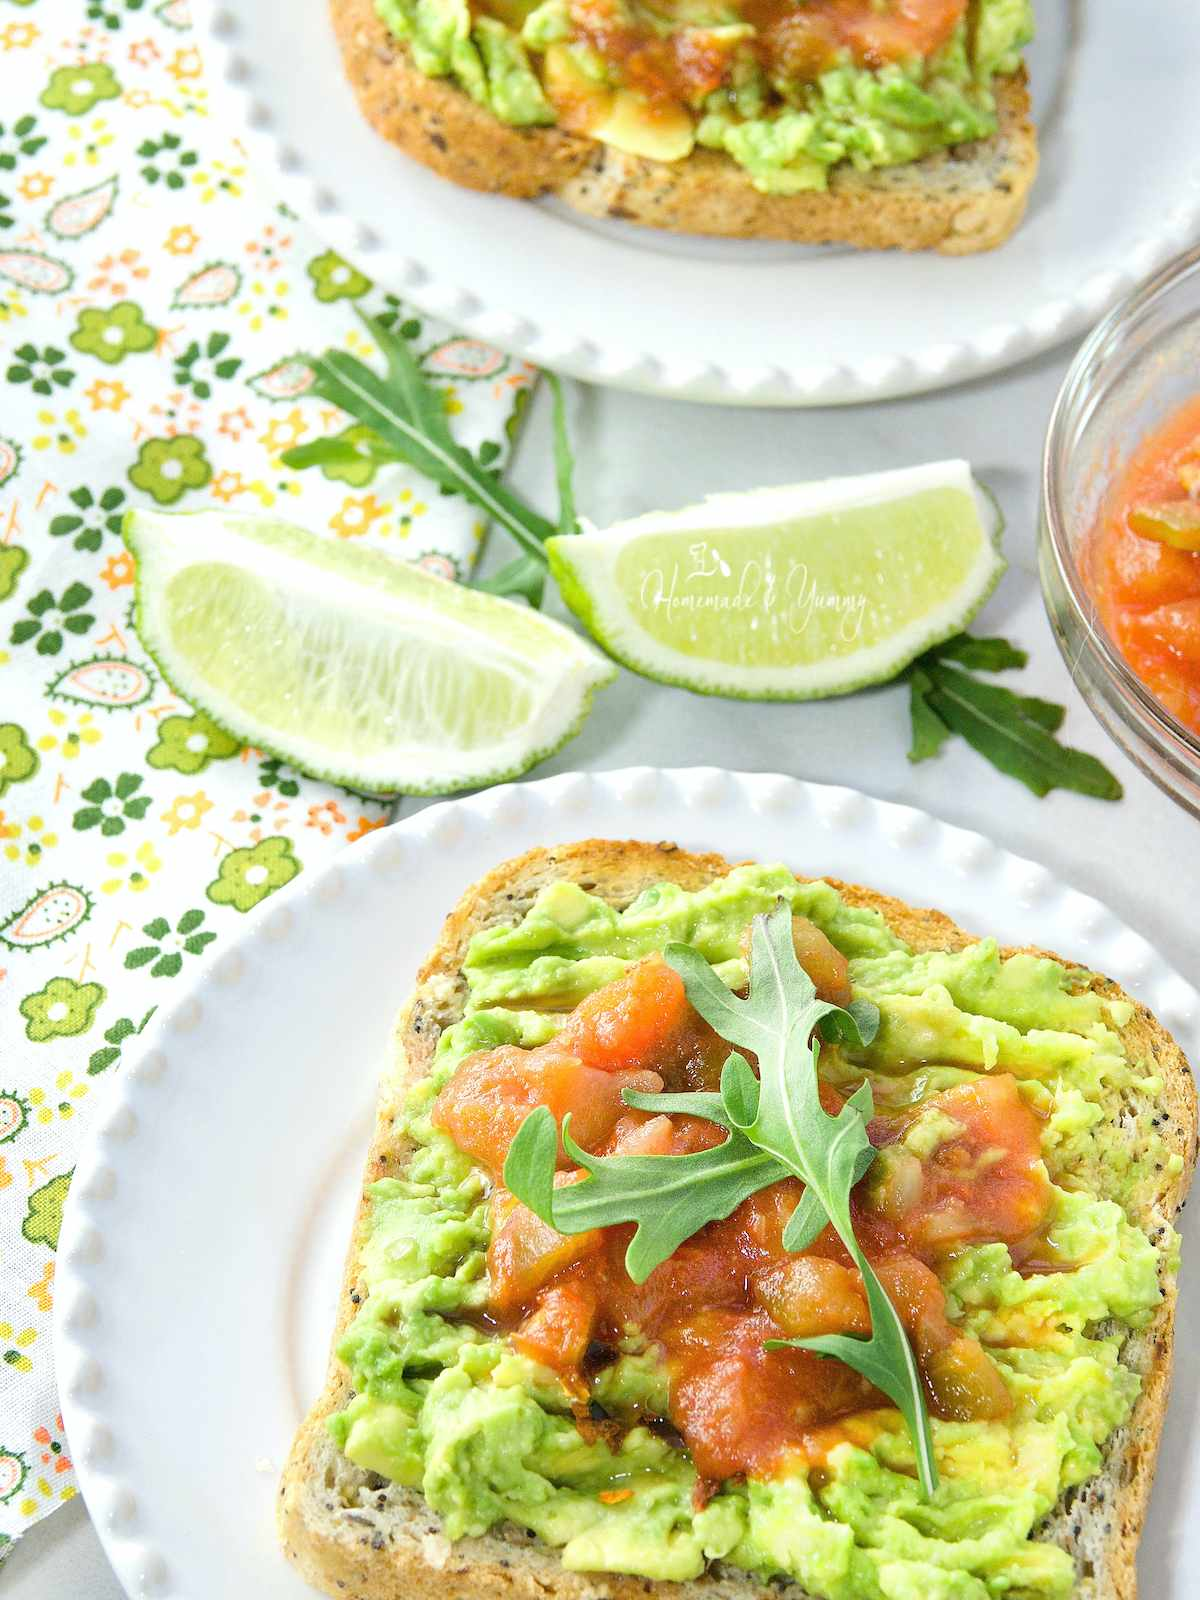 Mashed avocado on toast, topped with salsa and arugula.